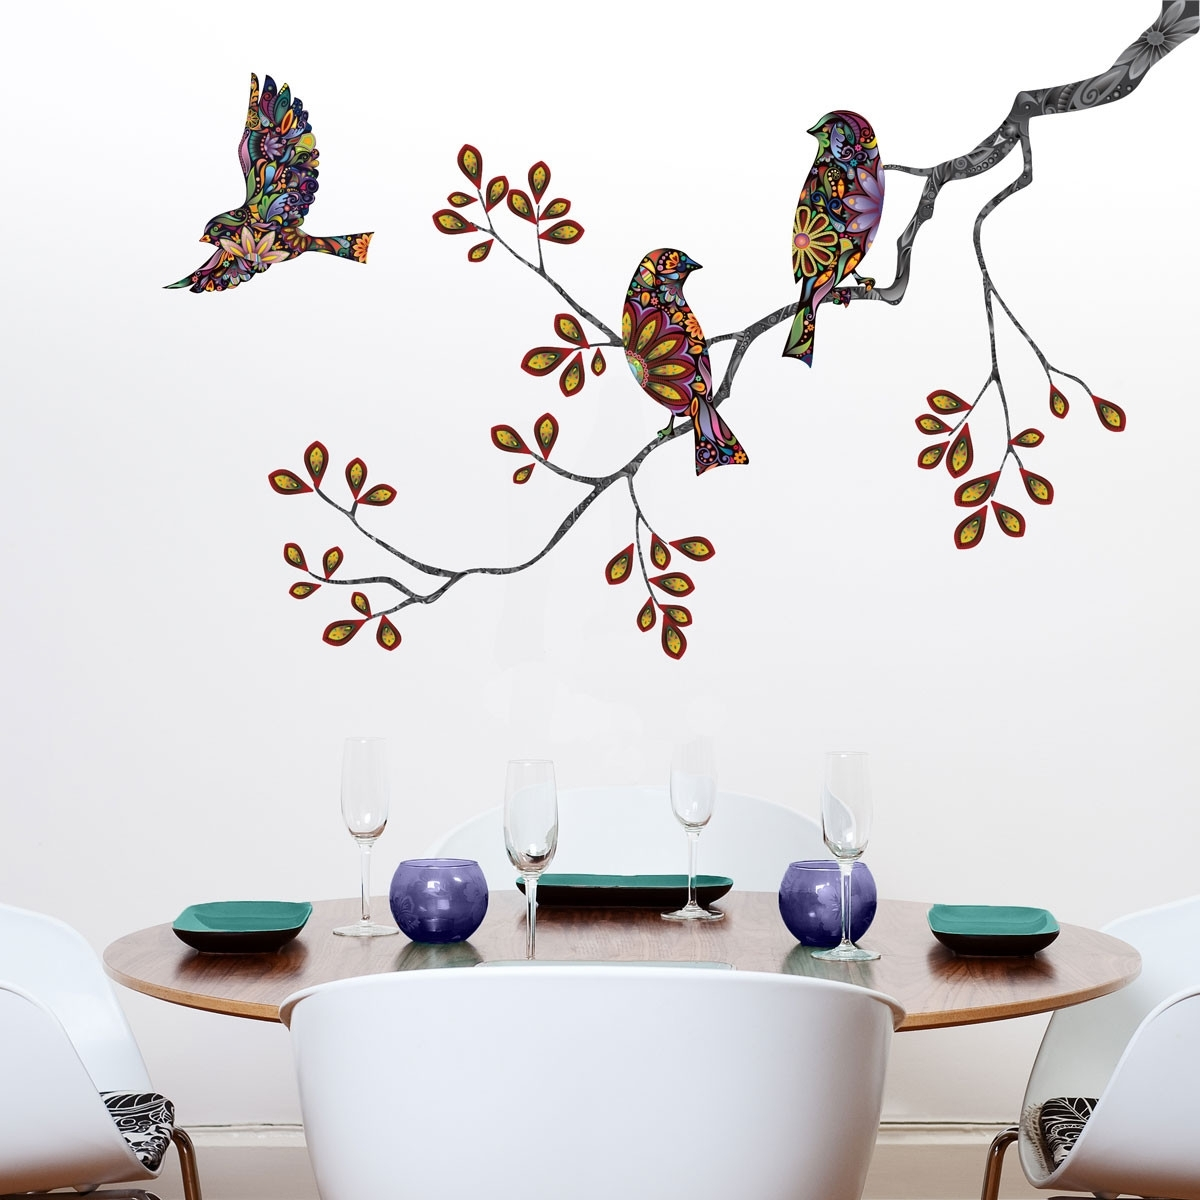 2018 Ceramic Bird Wall Art Regarding Wall Art Designs: Bird Wall Art Birds And Tree Branch Wall Sticker (View 2 of 15)